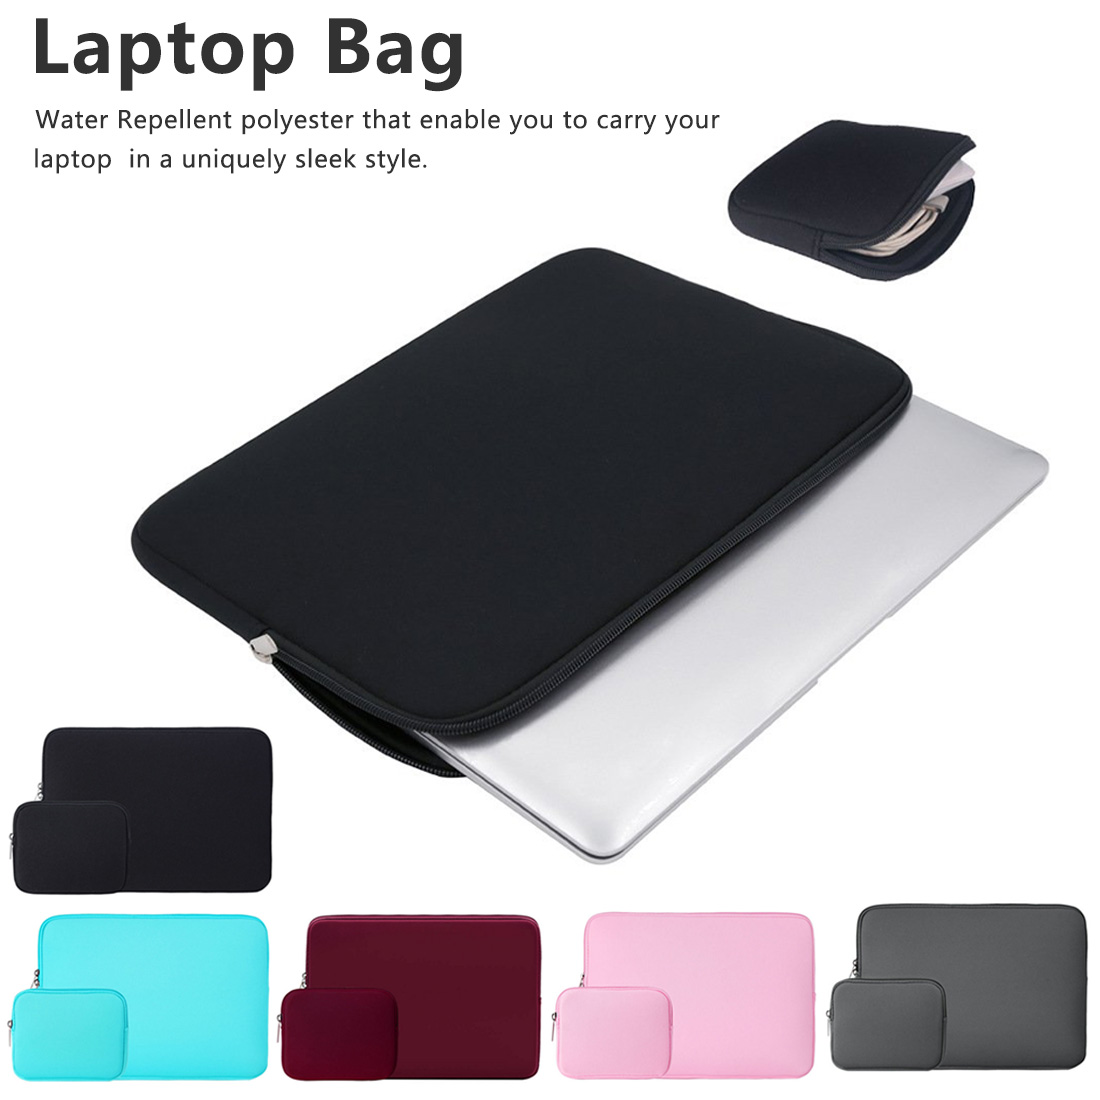 <font><b>Laptop</b></font> For Asus Acer HP Lenovo 11 13.3 <font><b>14</b></font> 15.6 <font><b>inch</b></font> for Macbook Air 11 13/Pro 13 15 Neoprene Water Repellent <font><b>Sleeve</b></font> Cases image